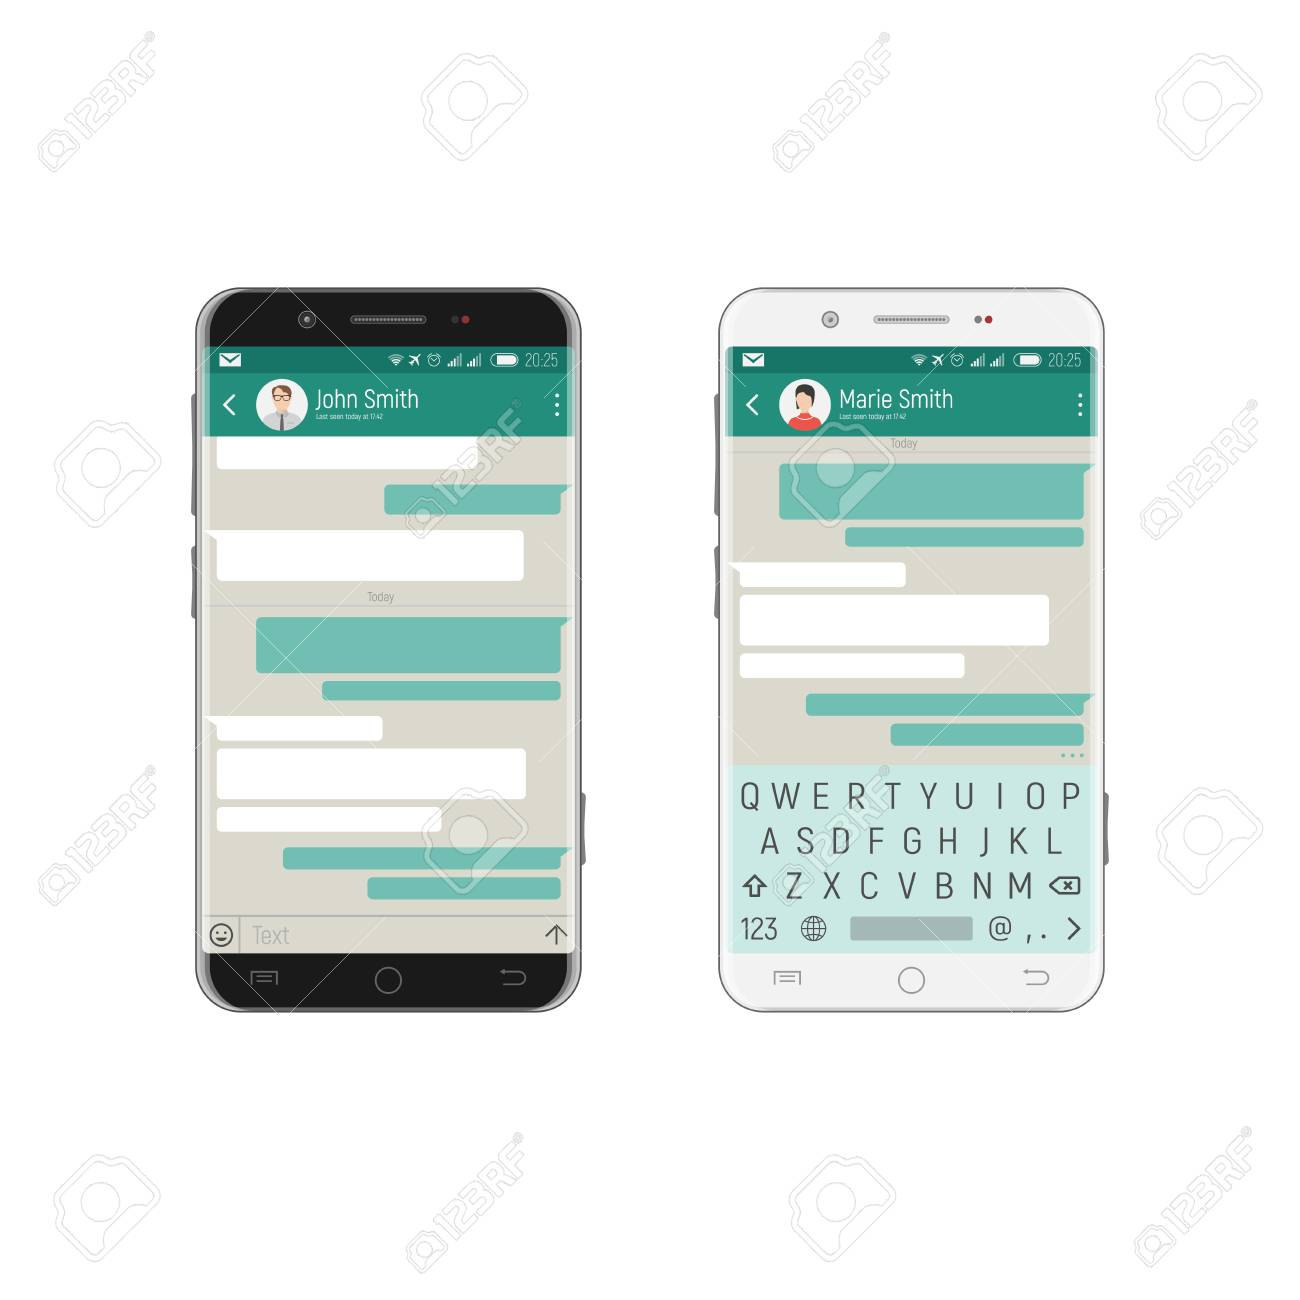 Mobile application with speech bubbles for communicating on the screen of black and white phones, with a qwerty keyboard on the touch screen. - 89622699